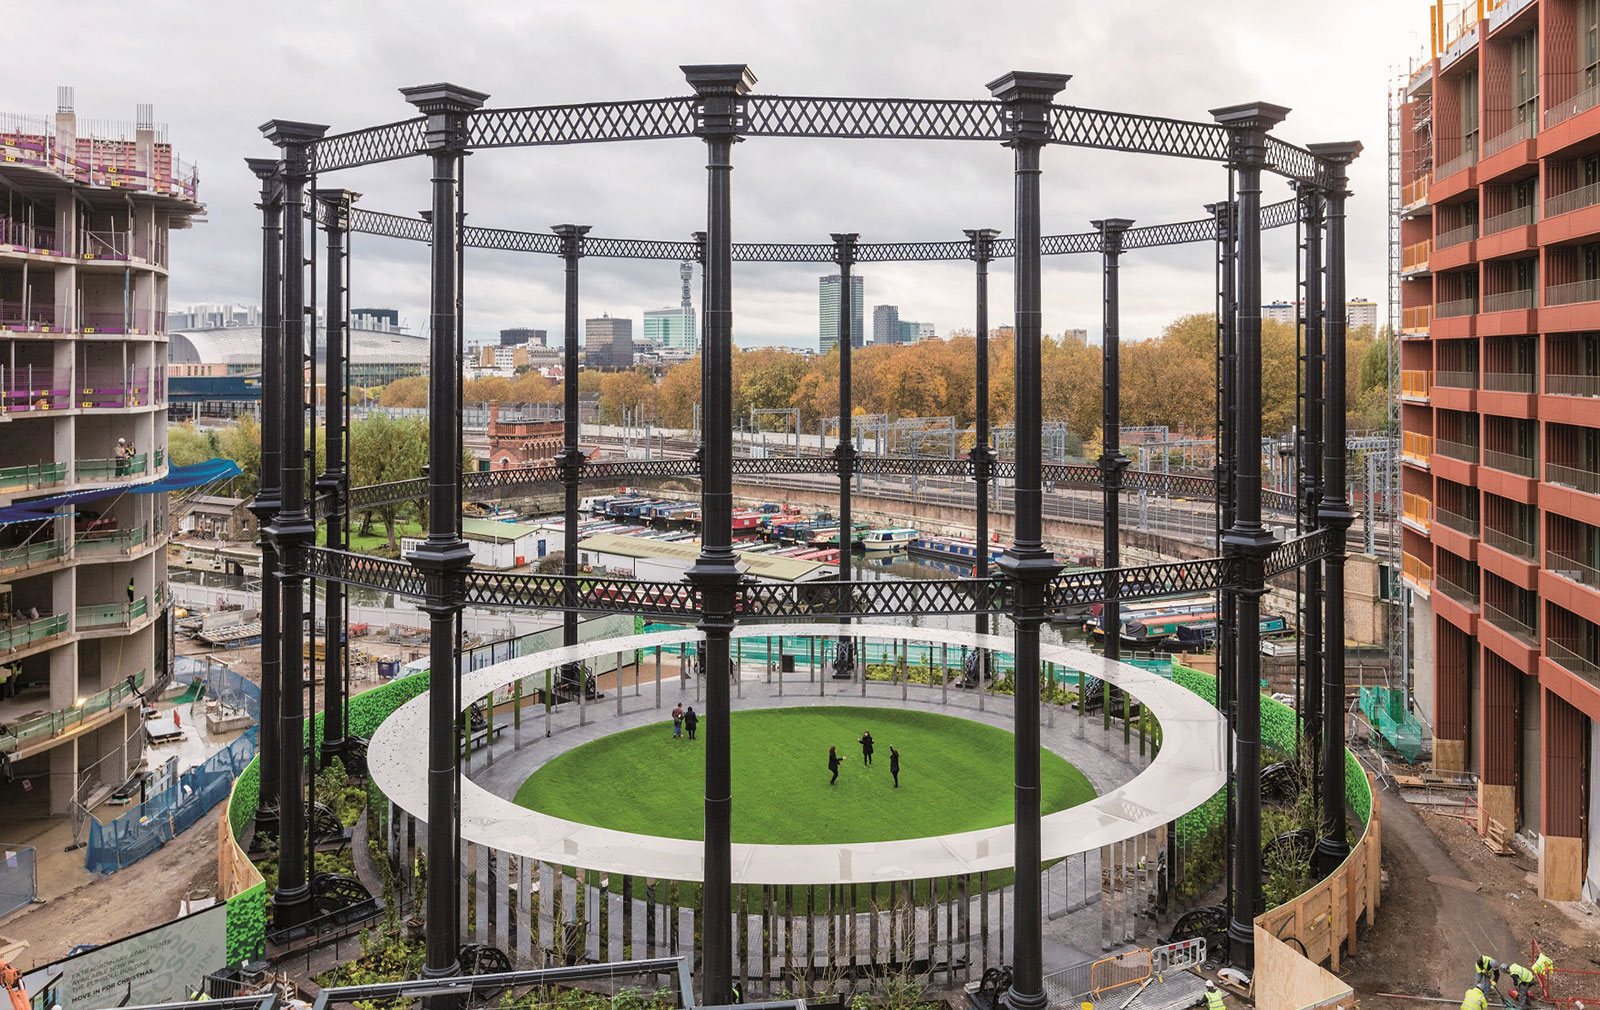 King's Cross Gasholder Park adaptive reuse